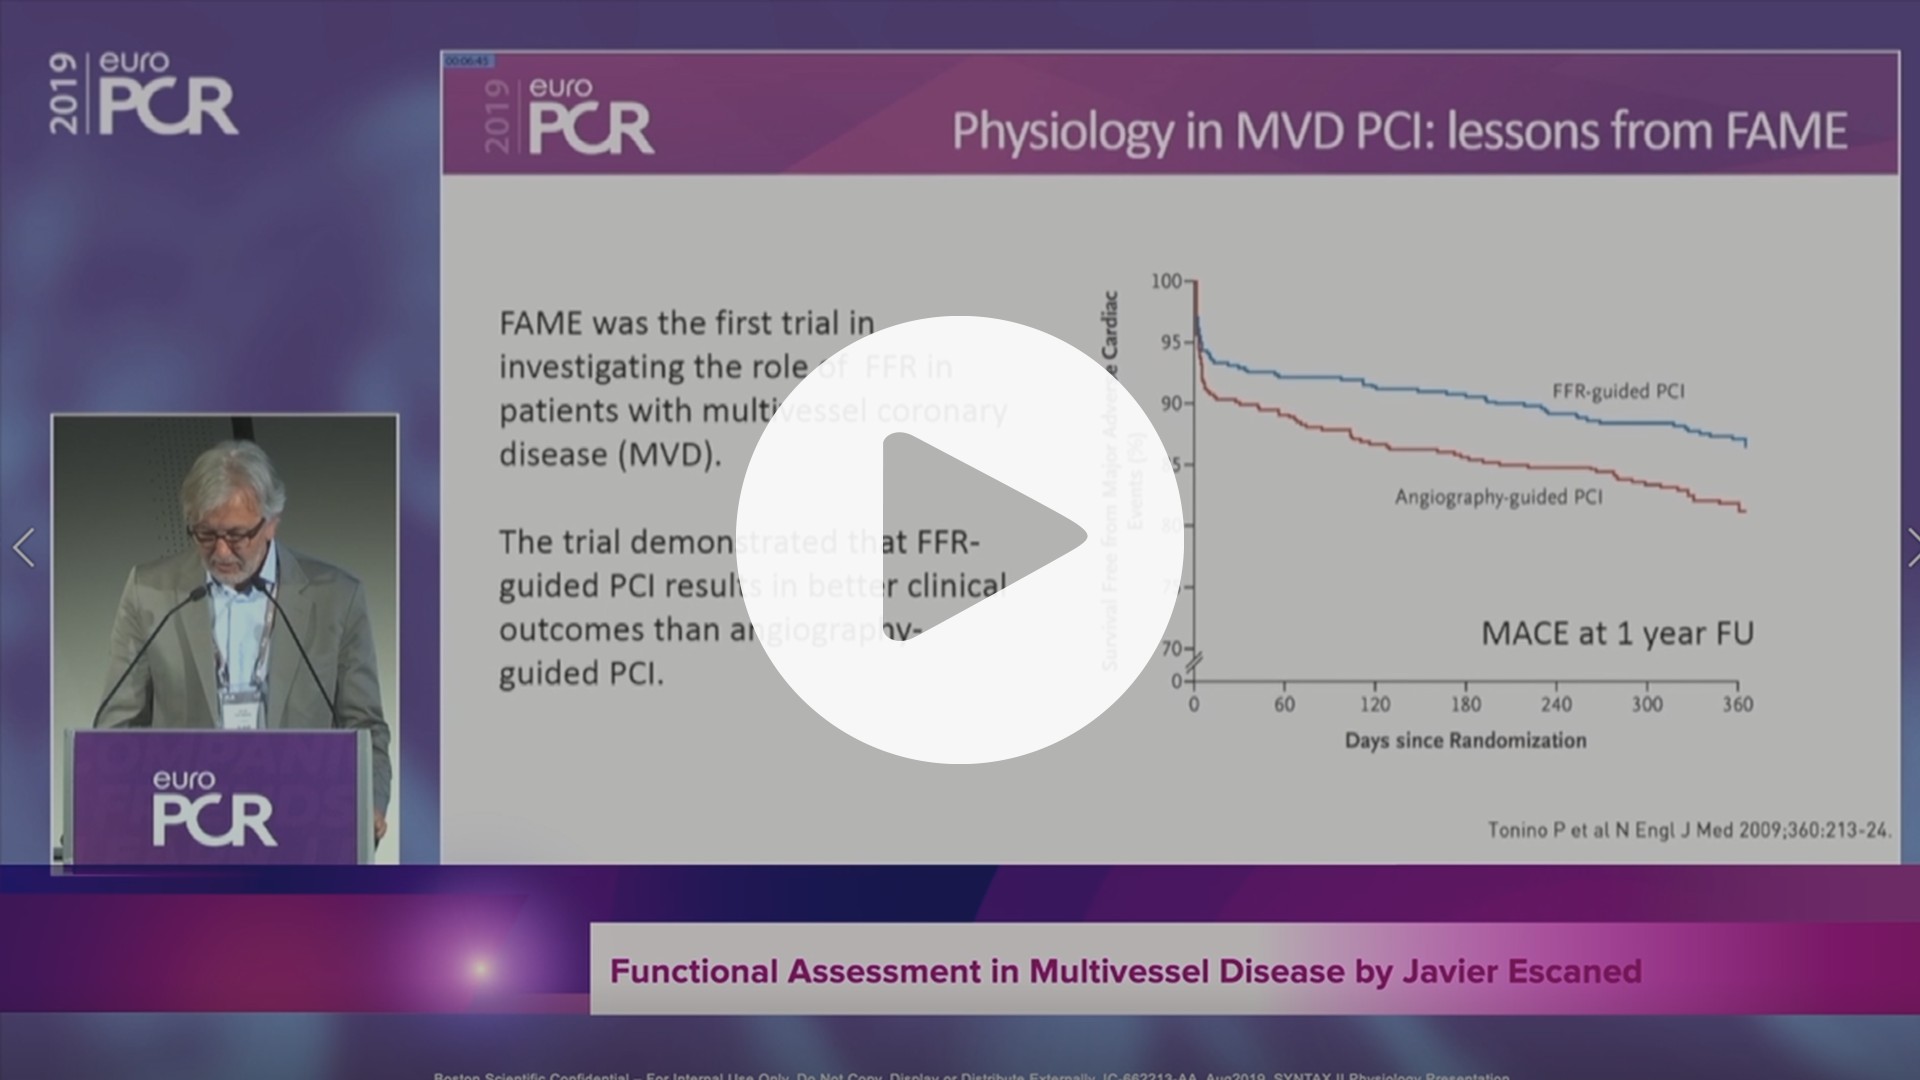 SYNTAX II Functional Assessment in Multivessel Disease by Javier Escaned, VIdeo